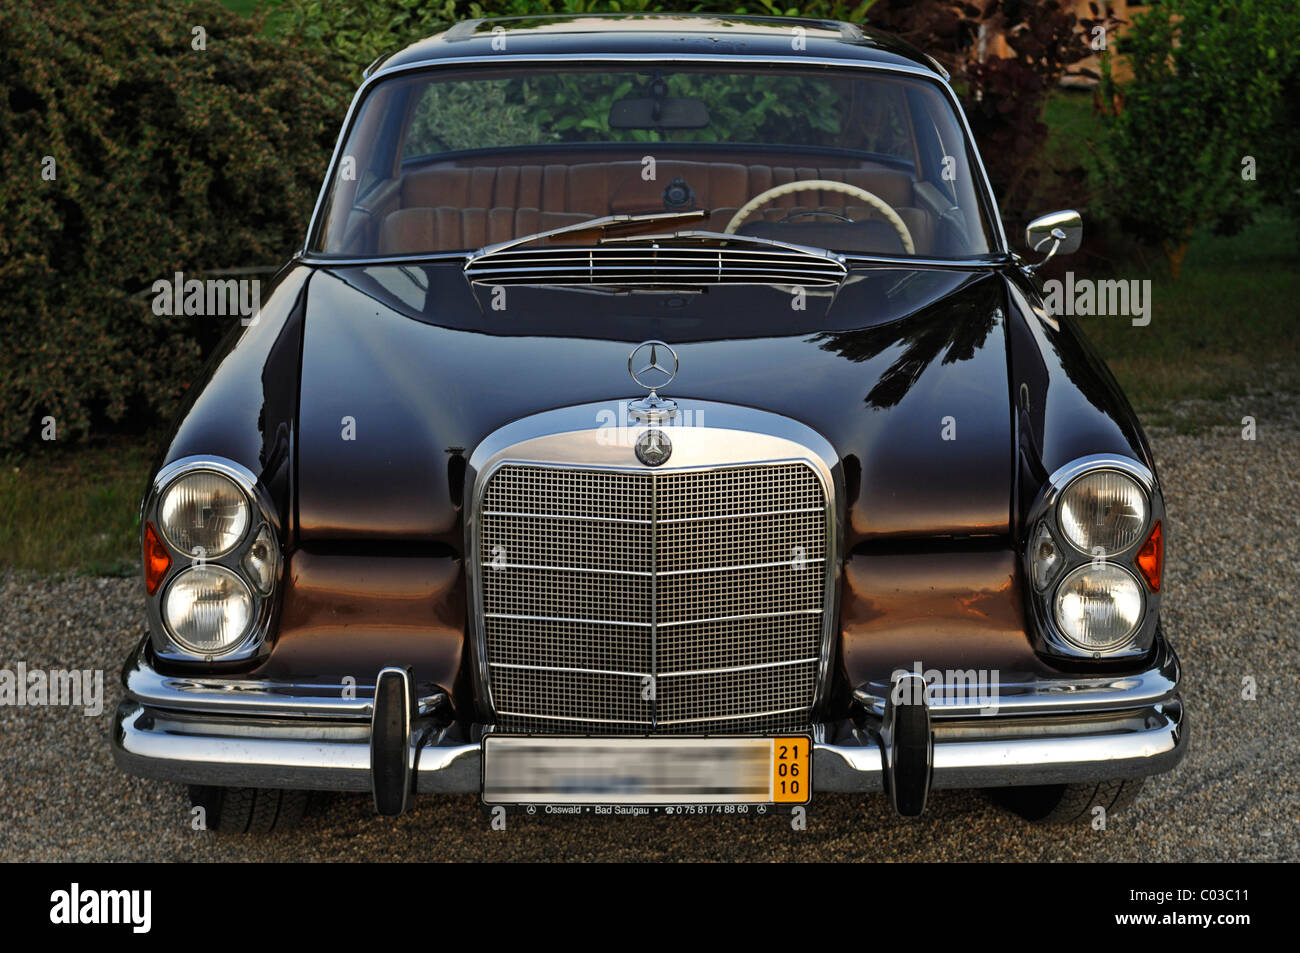 Classic car, front view of a Mercedes 250 SE, built 1962-65, 110 kW, 150 hp - Stock Image